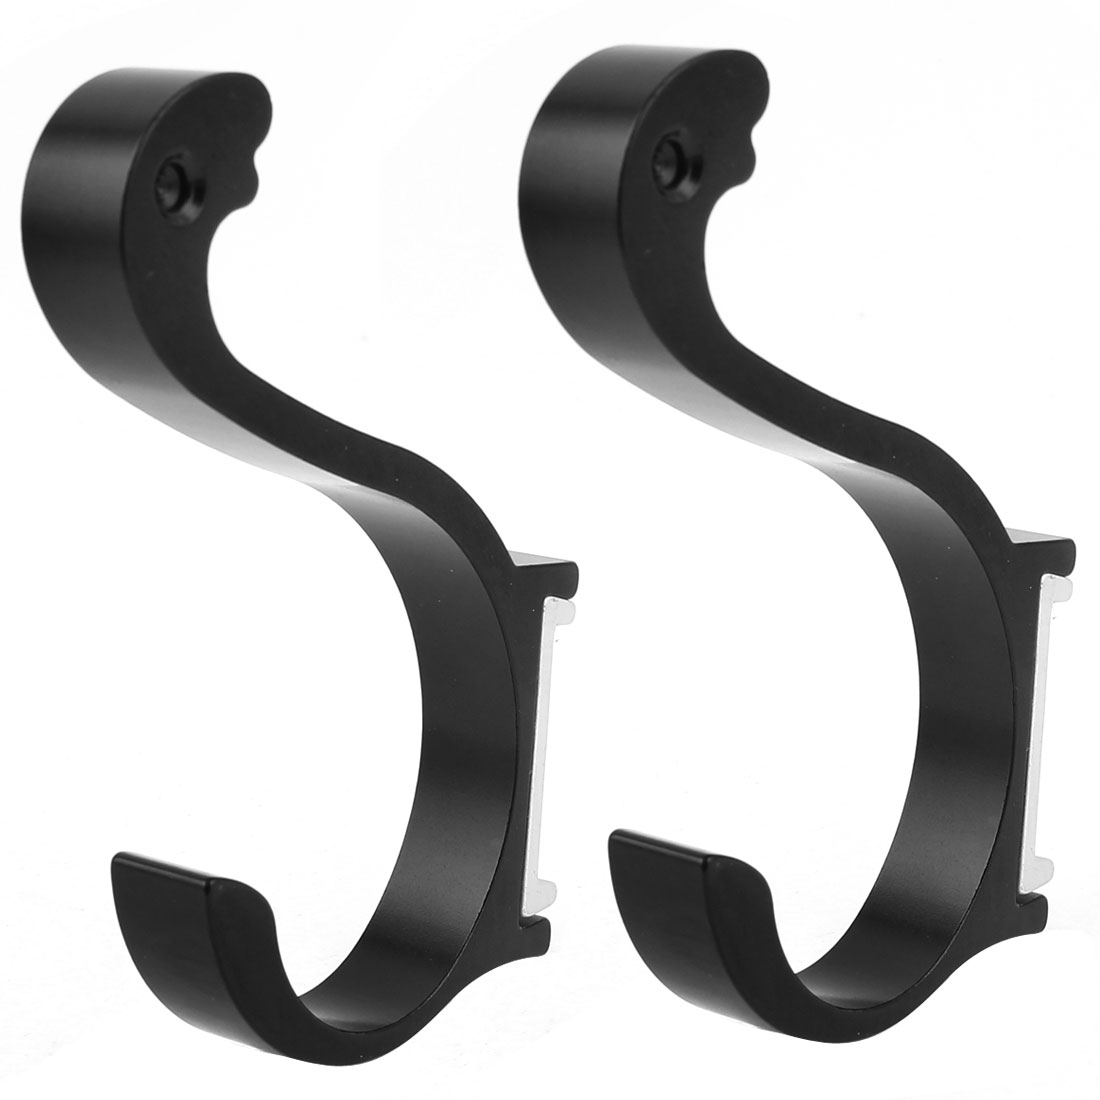 2 Pieces Aluminum Wall Mount Bathroom Towel Holder Robe Hooks Hangers Black 3.7""